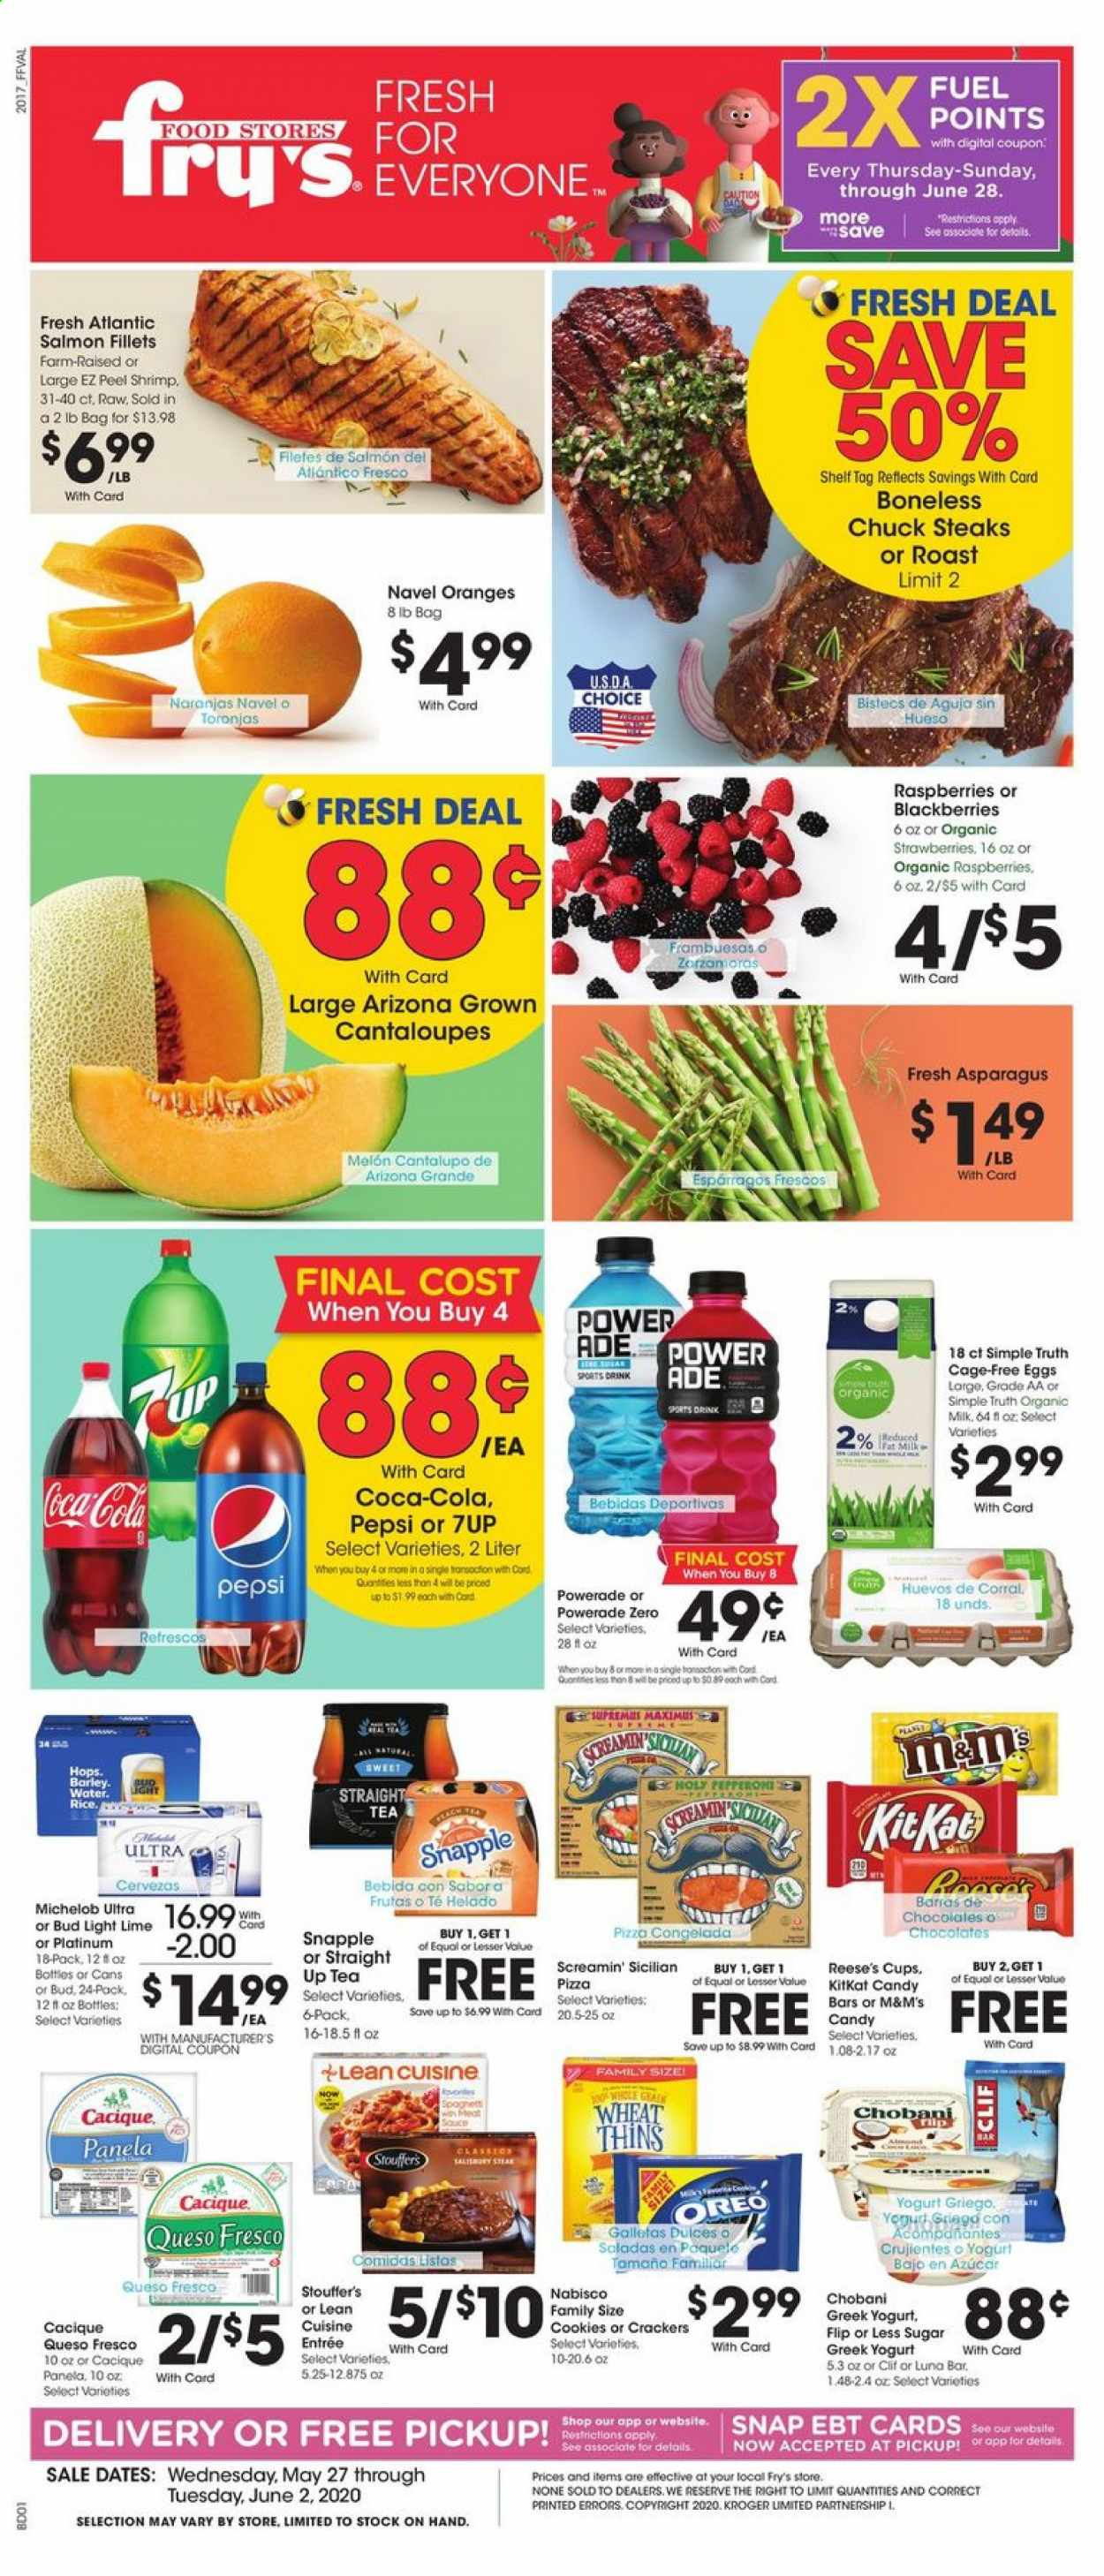 Fry's Flyer - 05.27.2020 - 06.02.2020 - Sales products - Bud Light, Michelob, asparagus, cantaloupe, blackberries, raspberries, strawberries, orange, melons, salmon, shrimps, pizza, pepperoni, queso fresco, greek yoghurt, Oreo, organic milk, eggs, sauce, cookies, candy, cracker, KitKat, M&M's, crackers, barley, rice, Coca-Cola, Powerade, Pepsi, water, tea. Page 1.